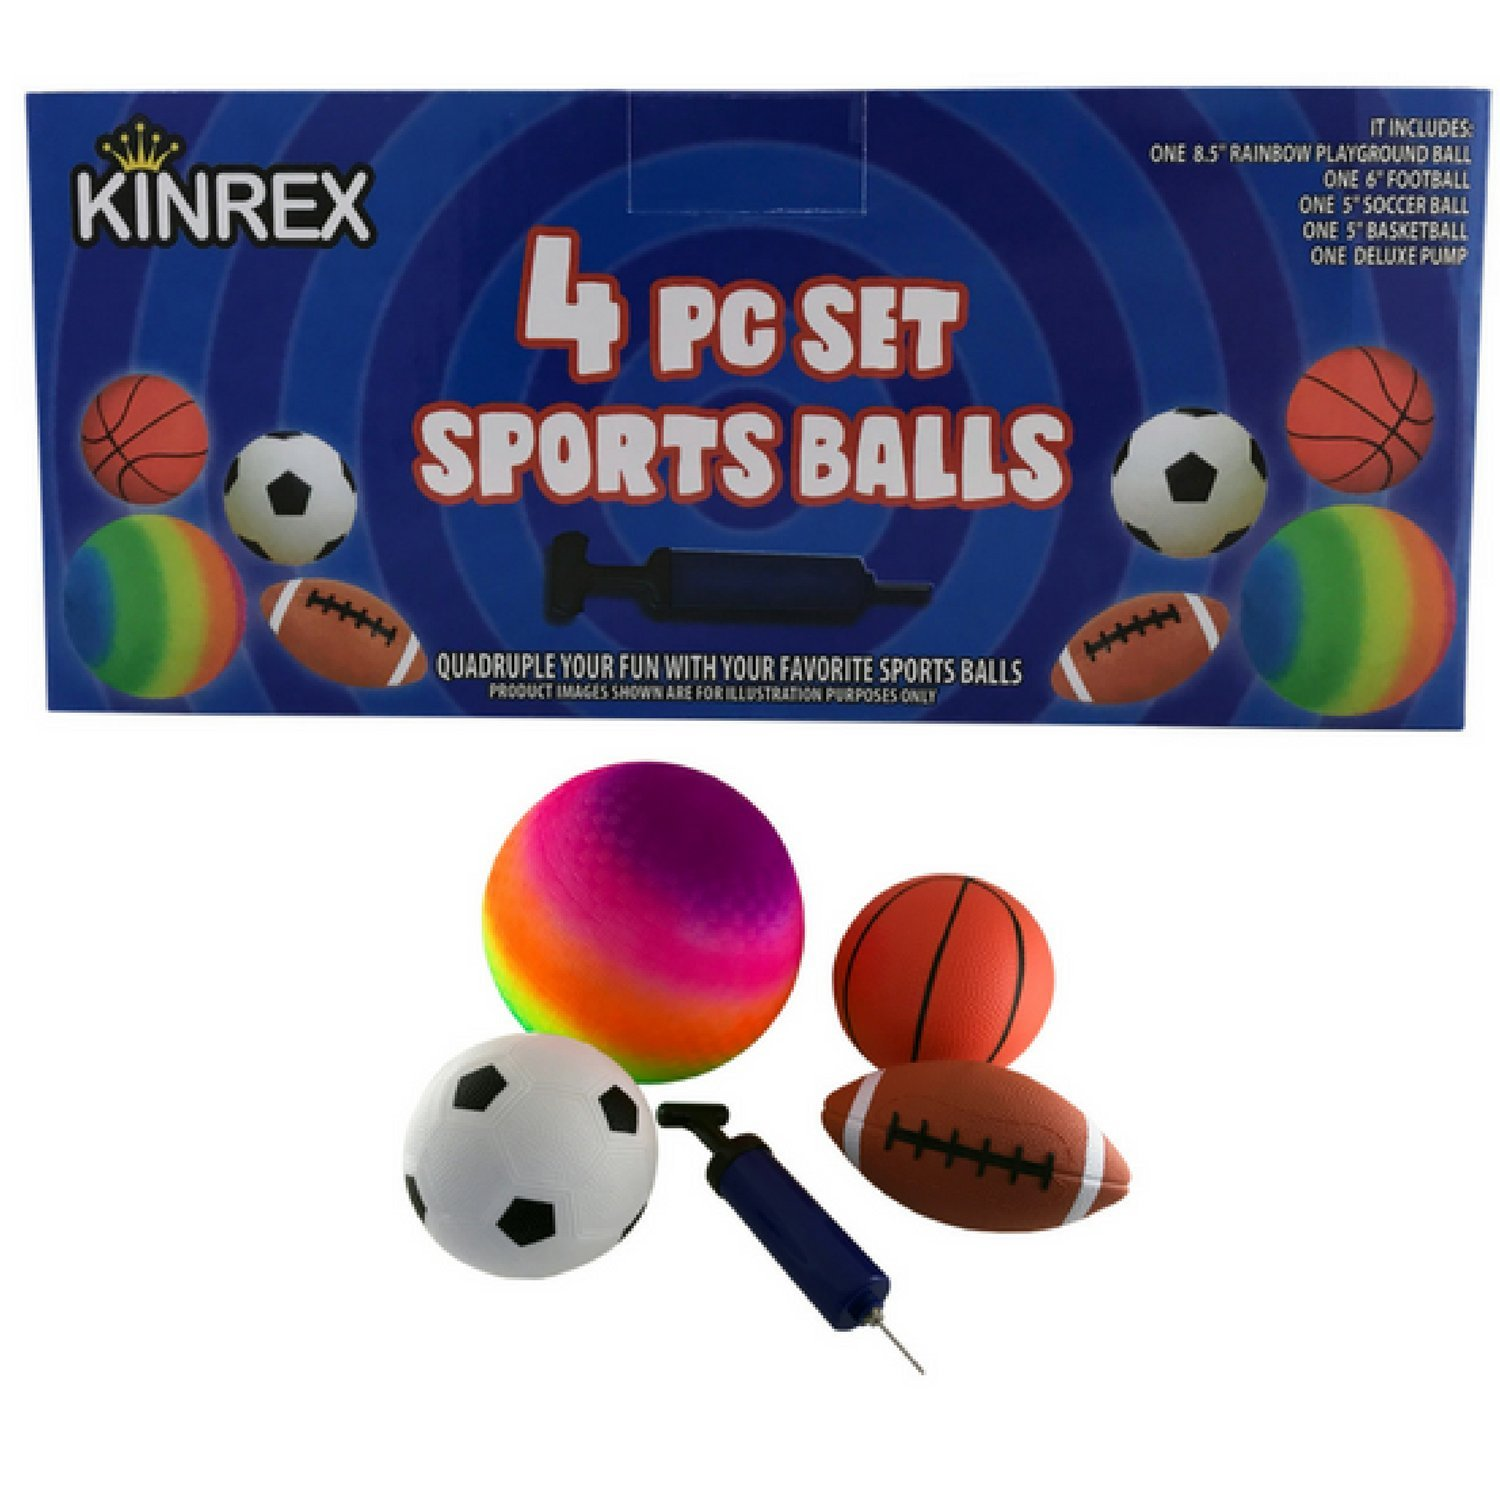 KINREX 4 Sports Ball Set with a Deluxe Pump - 8.5'' Rainbow Playground Ball - 6'' Football - 5'' Soccerball and 5'' Basketball - Sports Balls for Kids